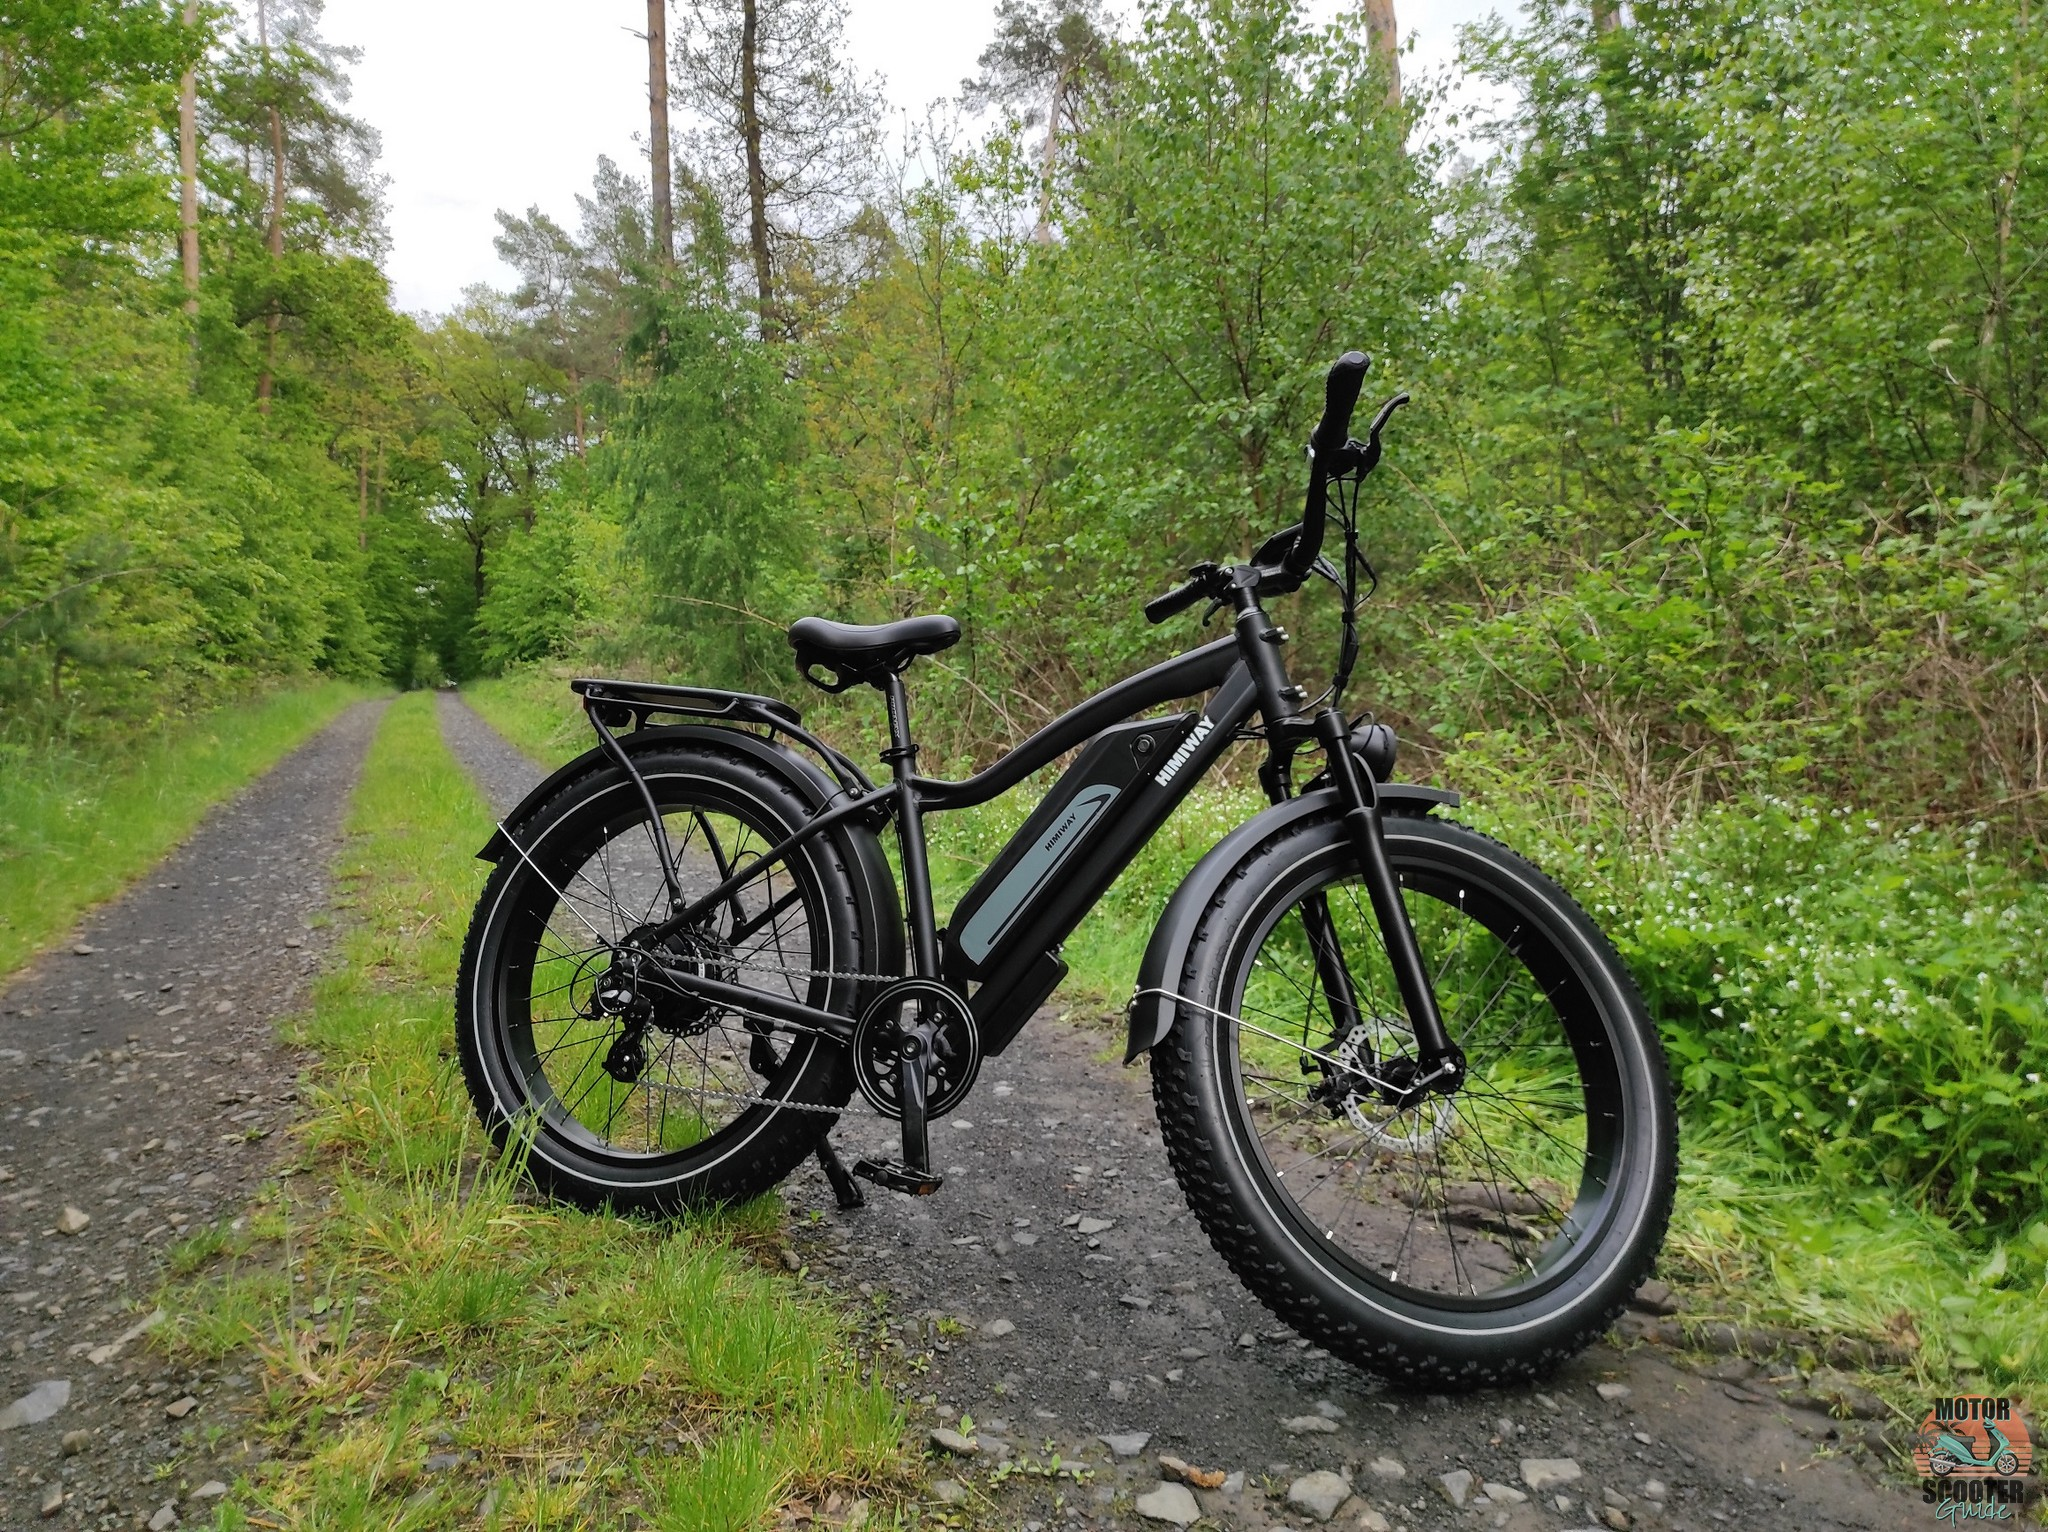 Himiway All Terrain Cruiser Review